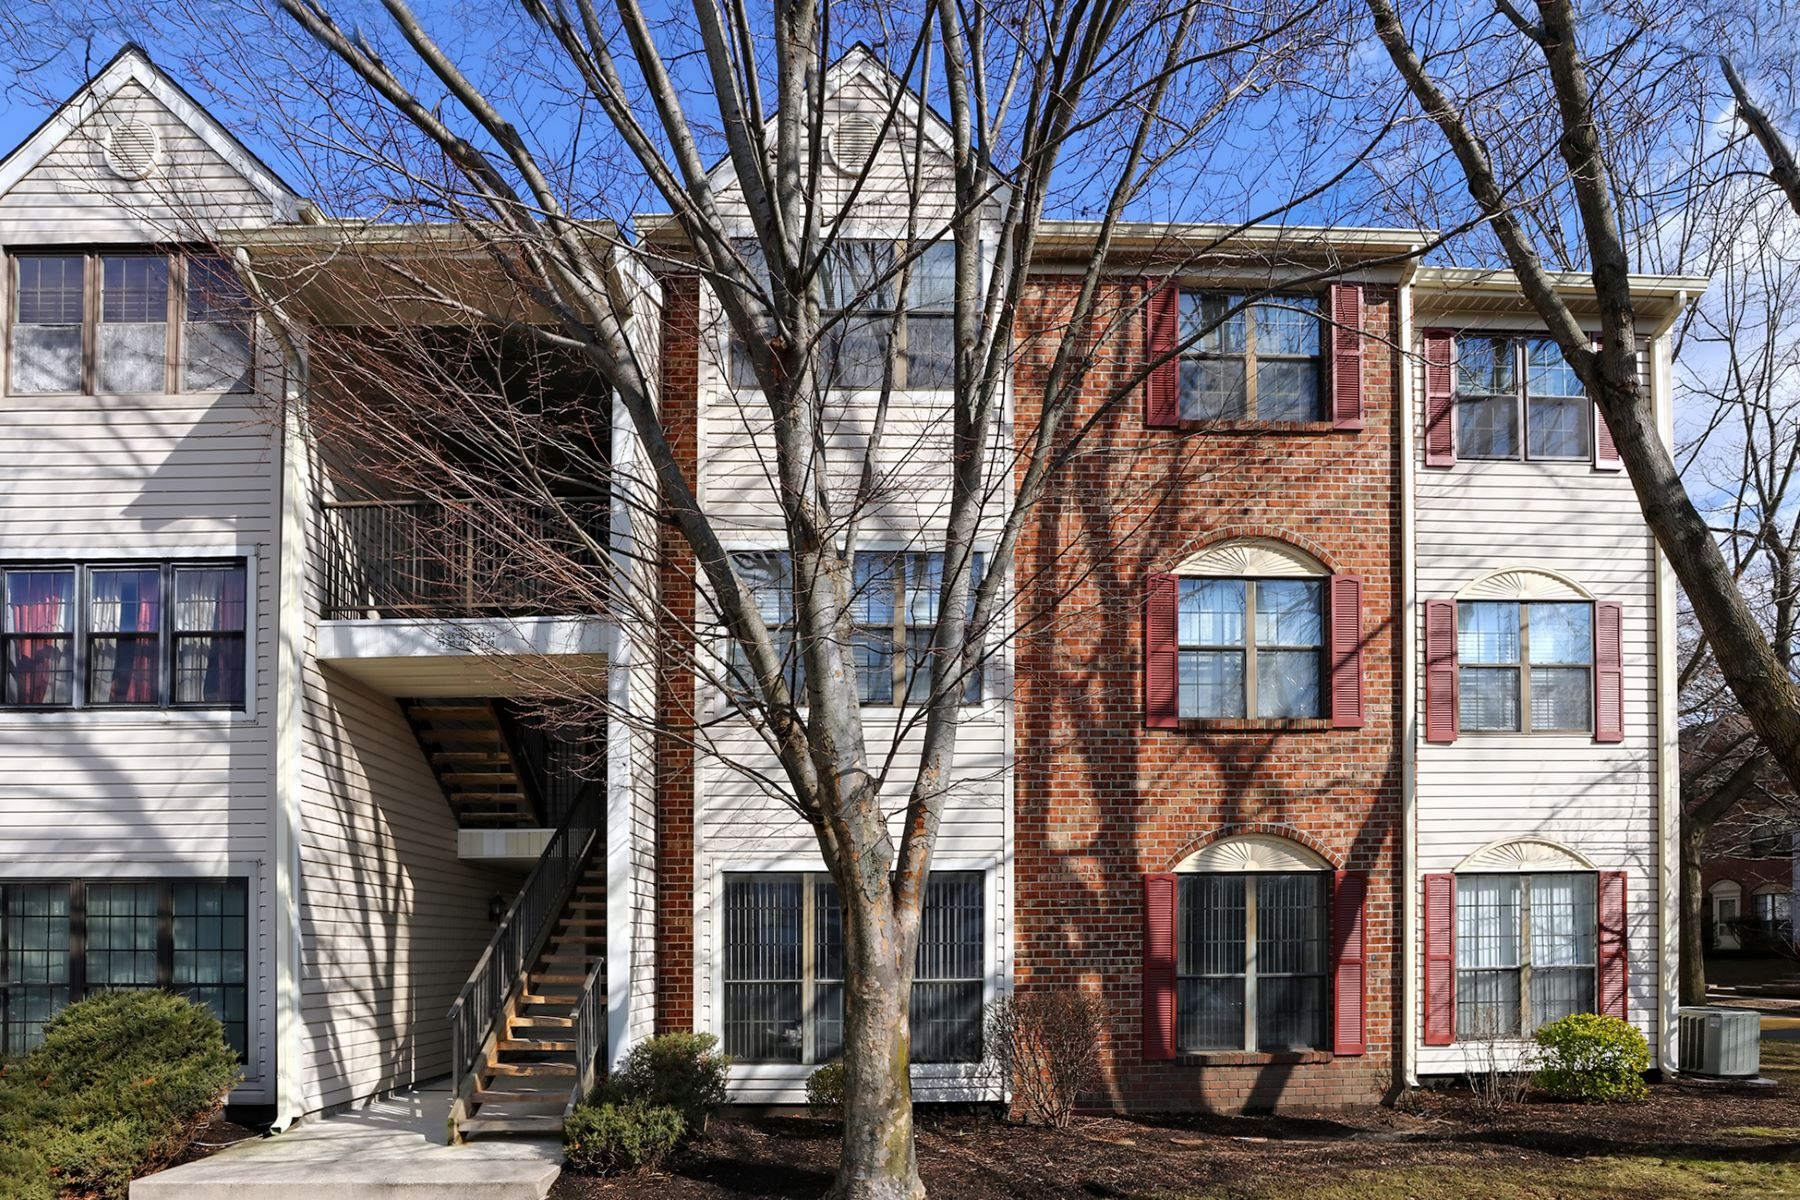 Townhouse for Sale at 2 Bedroom Standout in Lawrence Square Village 41 Feiler Court, Lawrenceville, New Jersey 08648 United StatesMunicipality: Lawrence Township